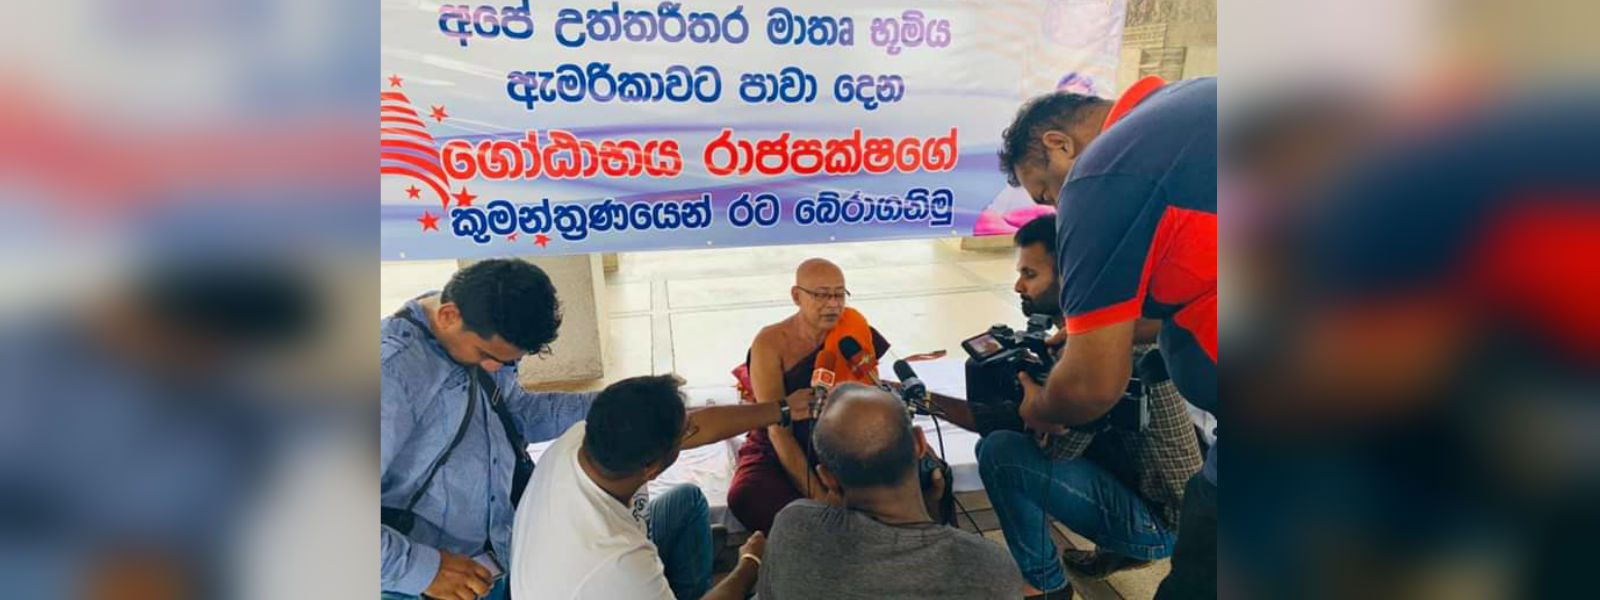 Ven. Inguruwatte Sumangala thero launches a fast calling on GR to prove he is not a US citizen